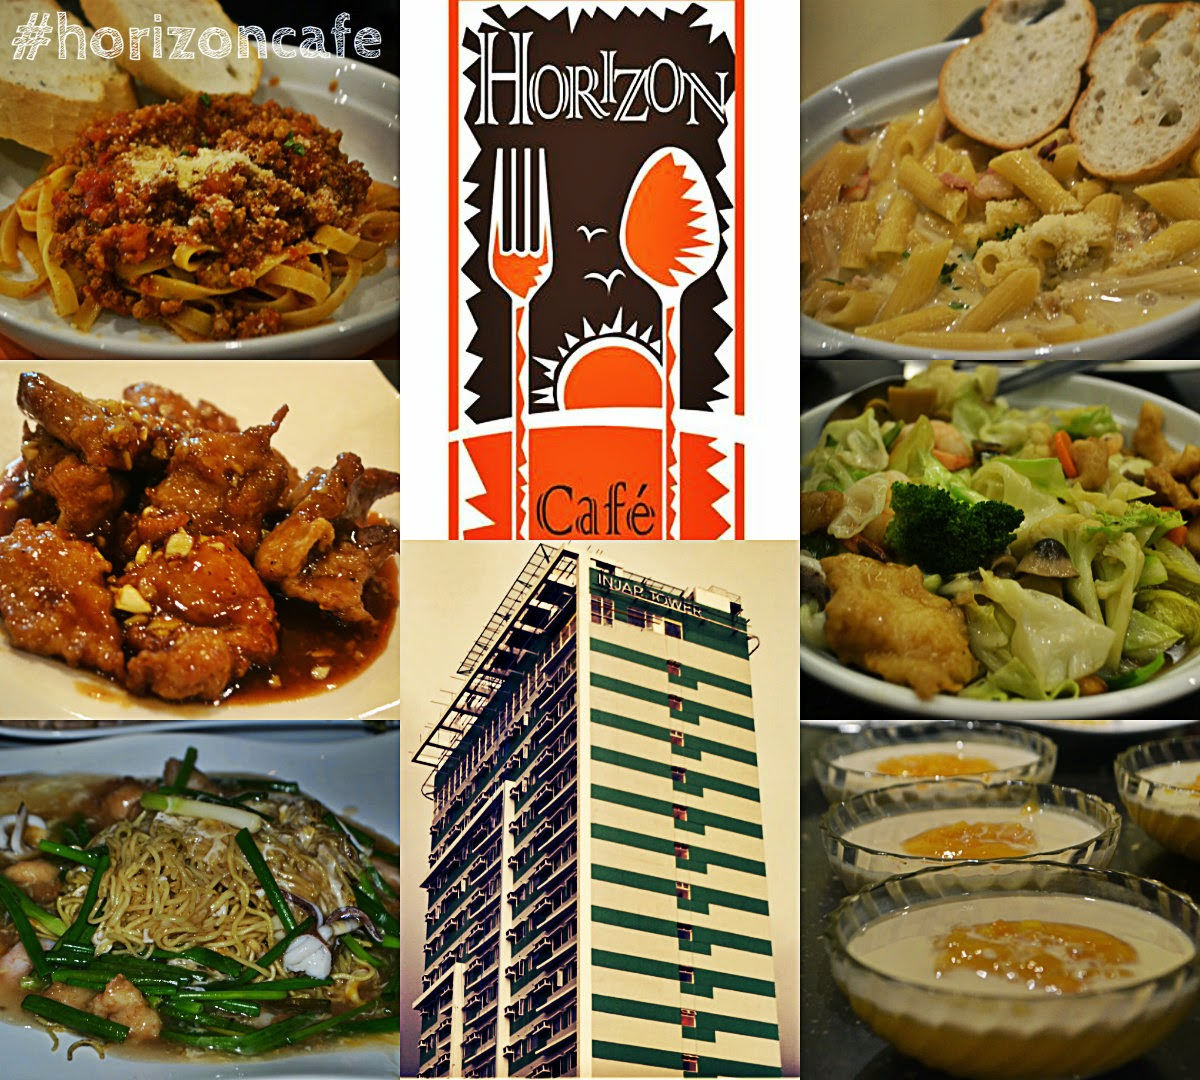 Horizon Cafe Injap Hotel Tower Asian Western Cuisine Cafe ilonggo iloilo city